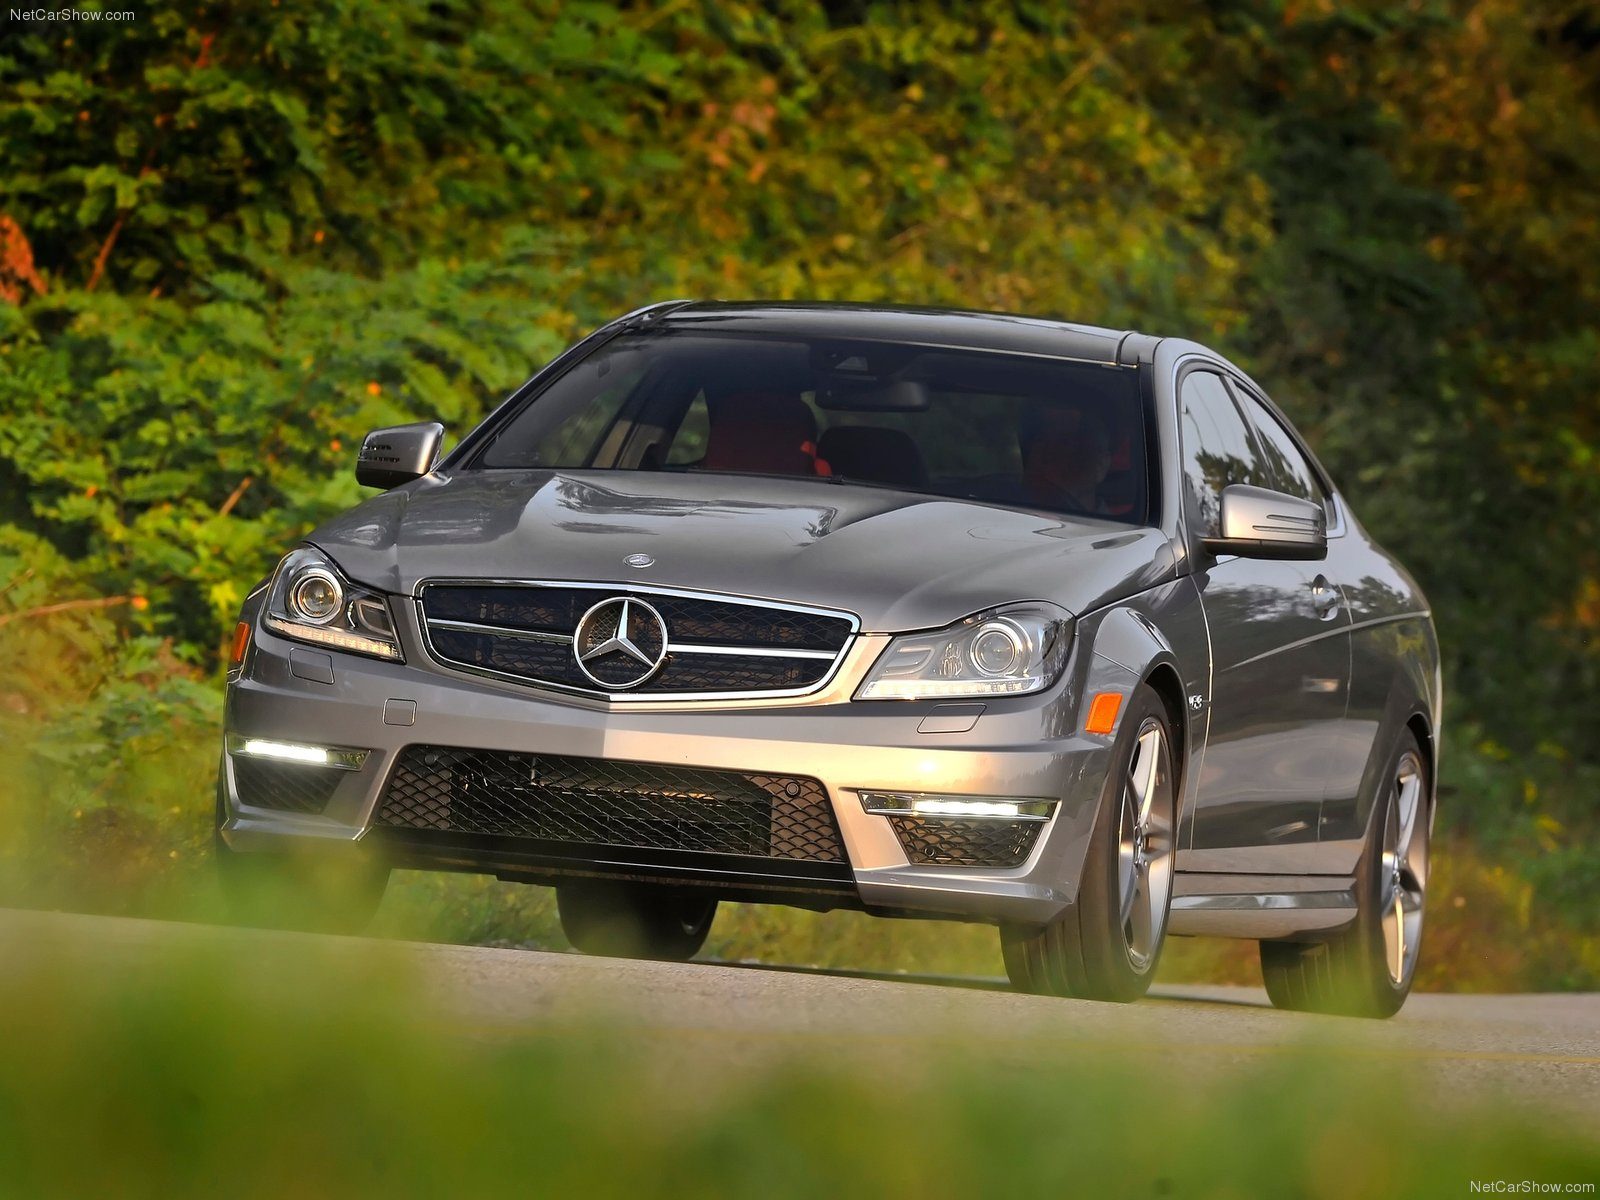 Mercedes-Benz C63 AMG Coupe photo #84568